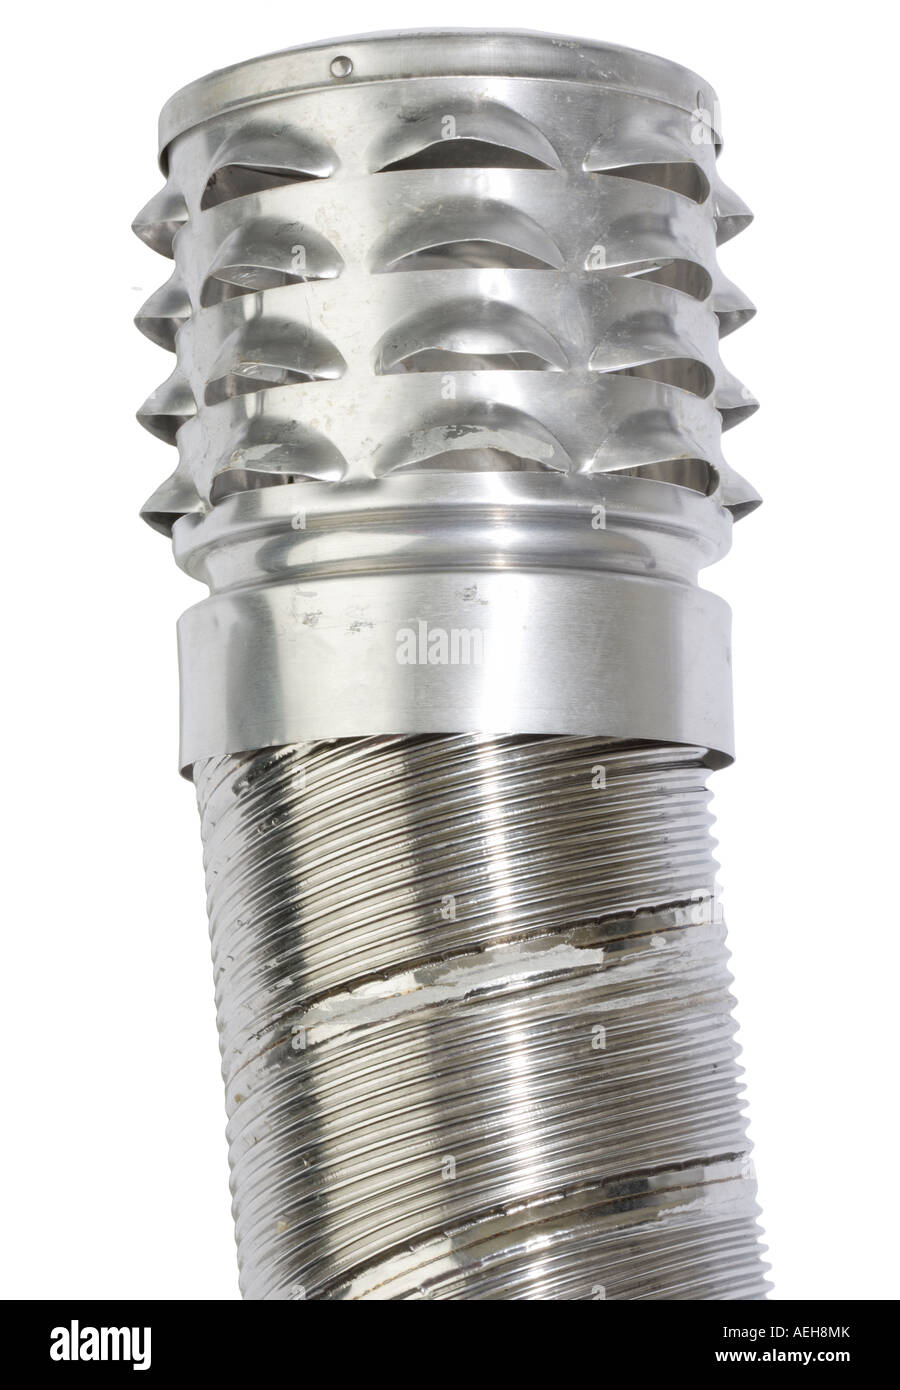 metal chimney flue piping with vent at top stock photo royalty